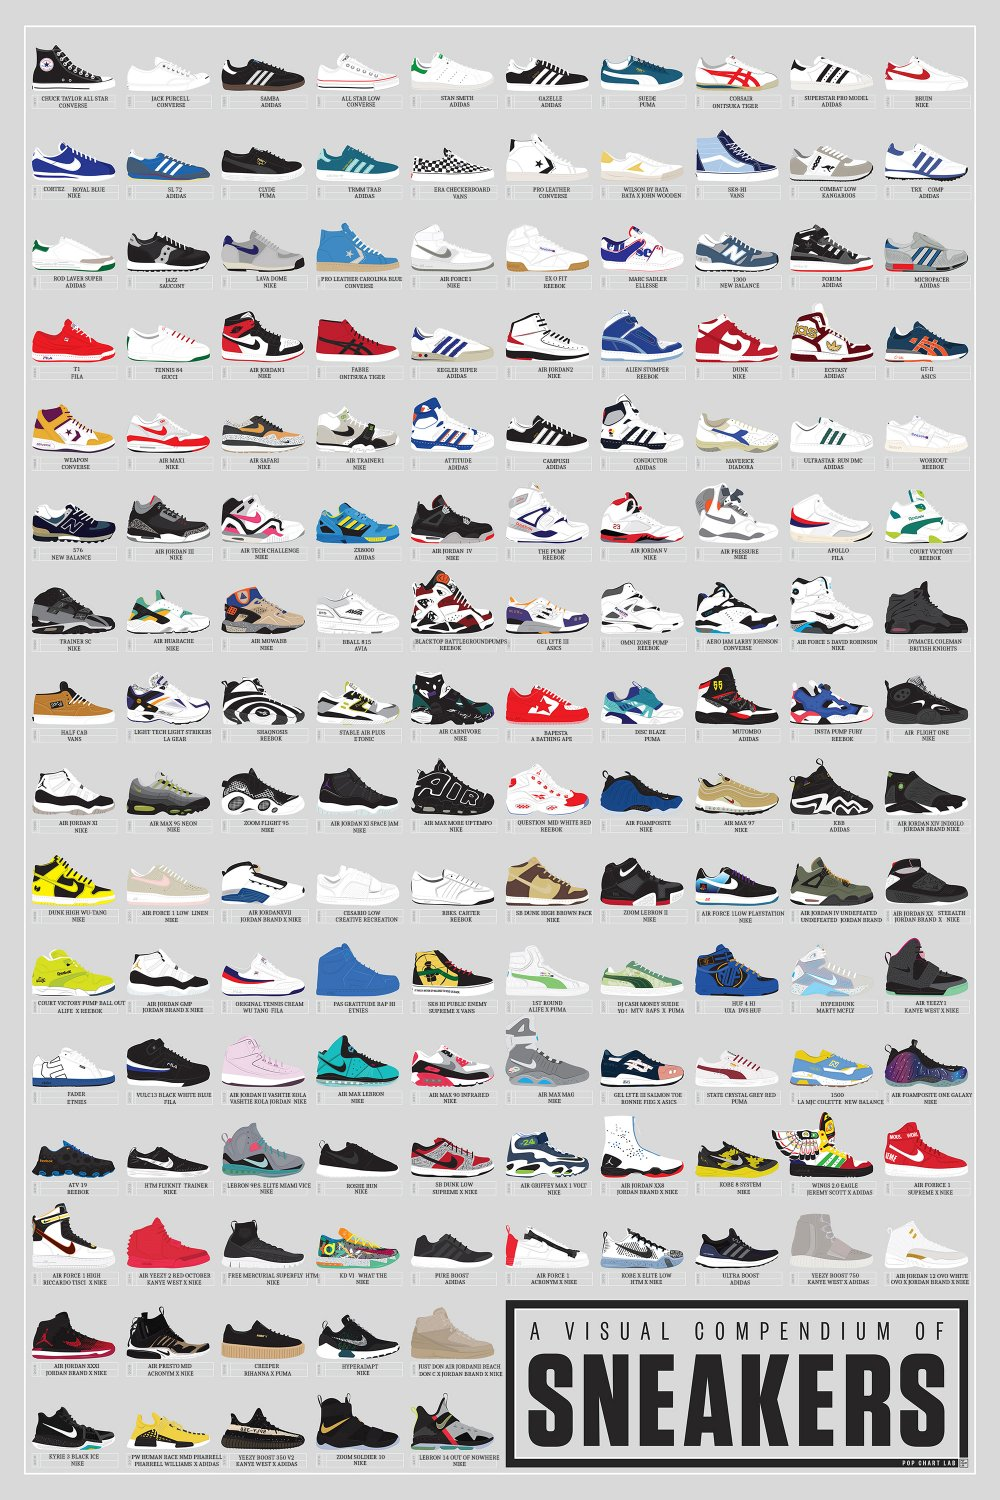 A Visual Compendium of Sneakers Chart  18x28 inches Poster Print